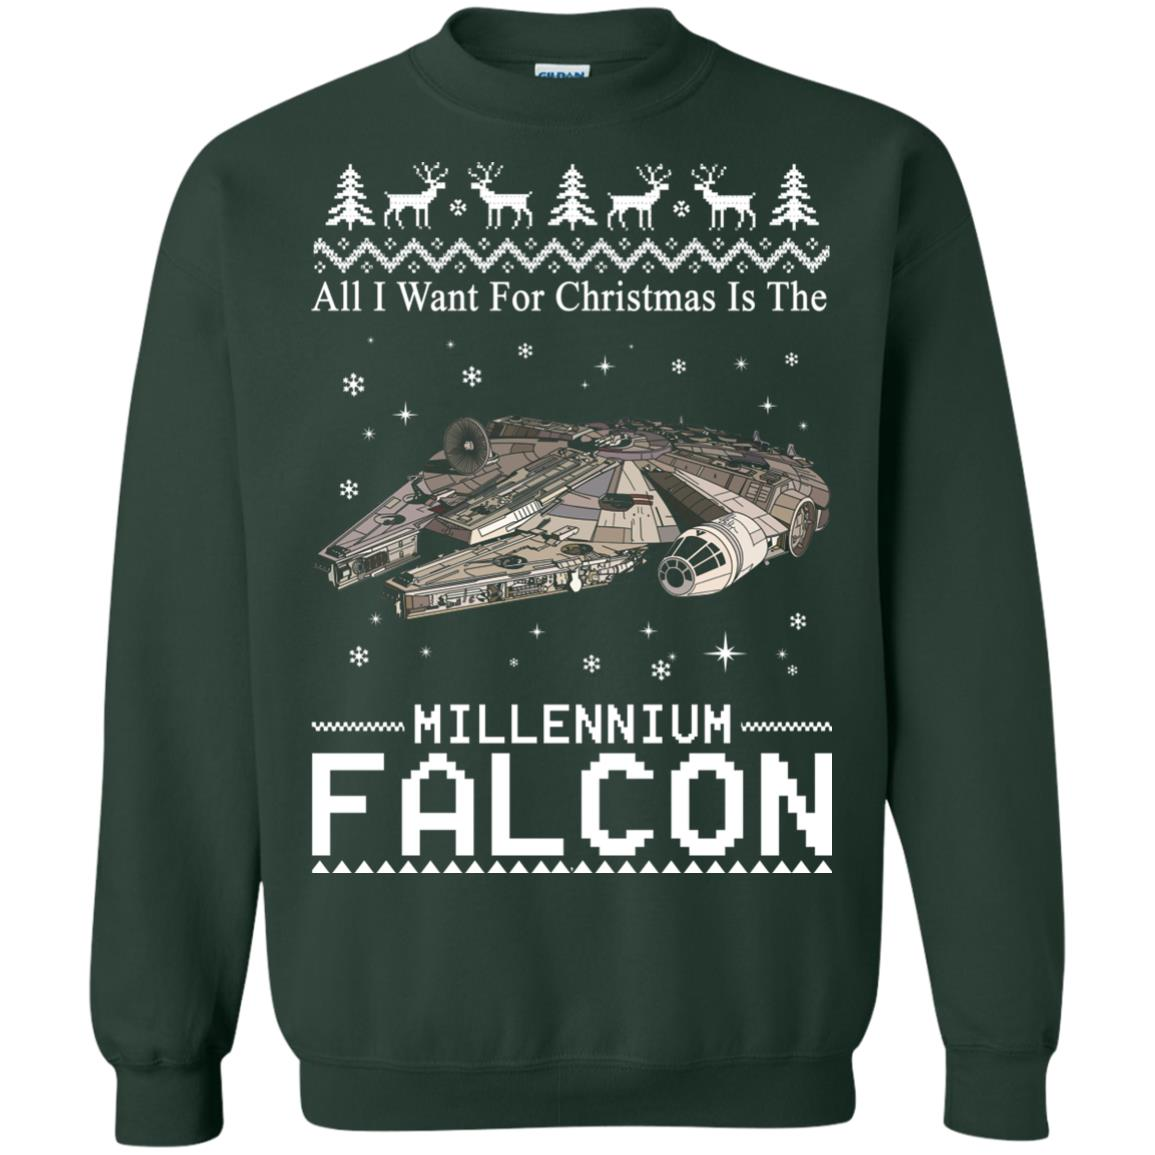 image 2141 - All I Want For Christmas is The Millennium Falcon Sweater, Ugly Sweatshirt